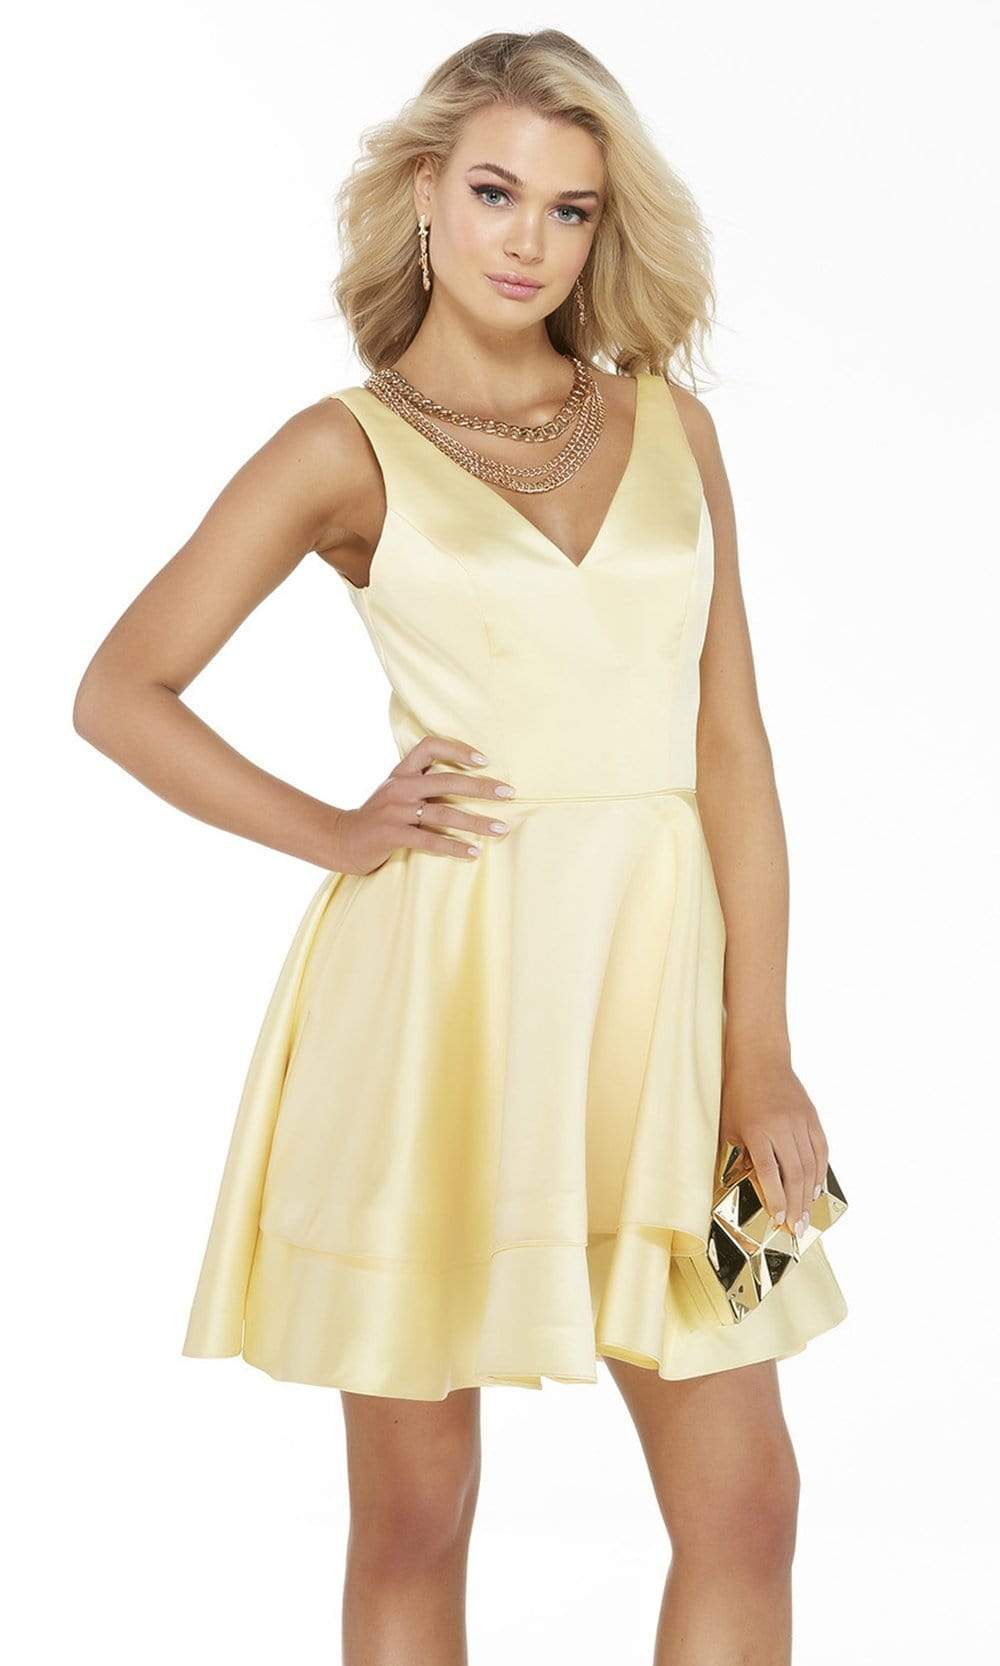 Alyce Paris - 3023 Luxe Silk Satin Sleeveless V Neck A-Line Dress Homecoming Dresses 000 / Light Yellow